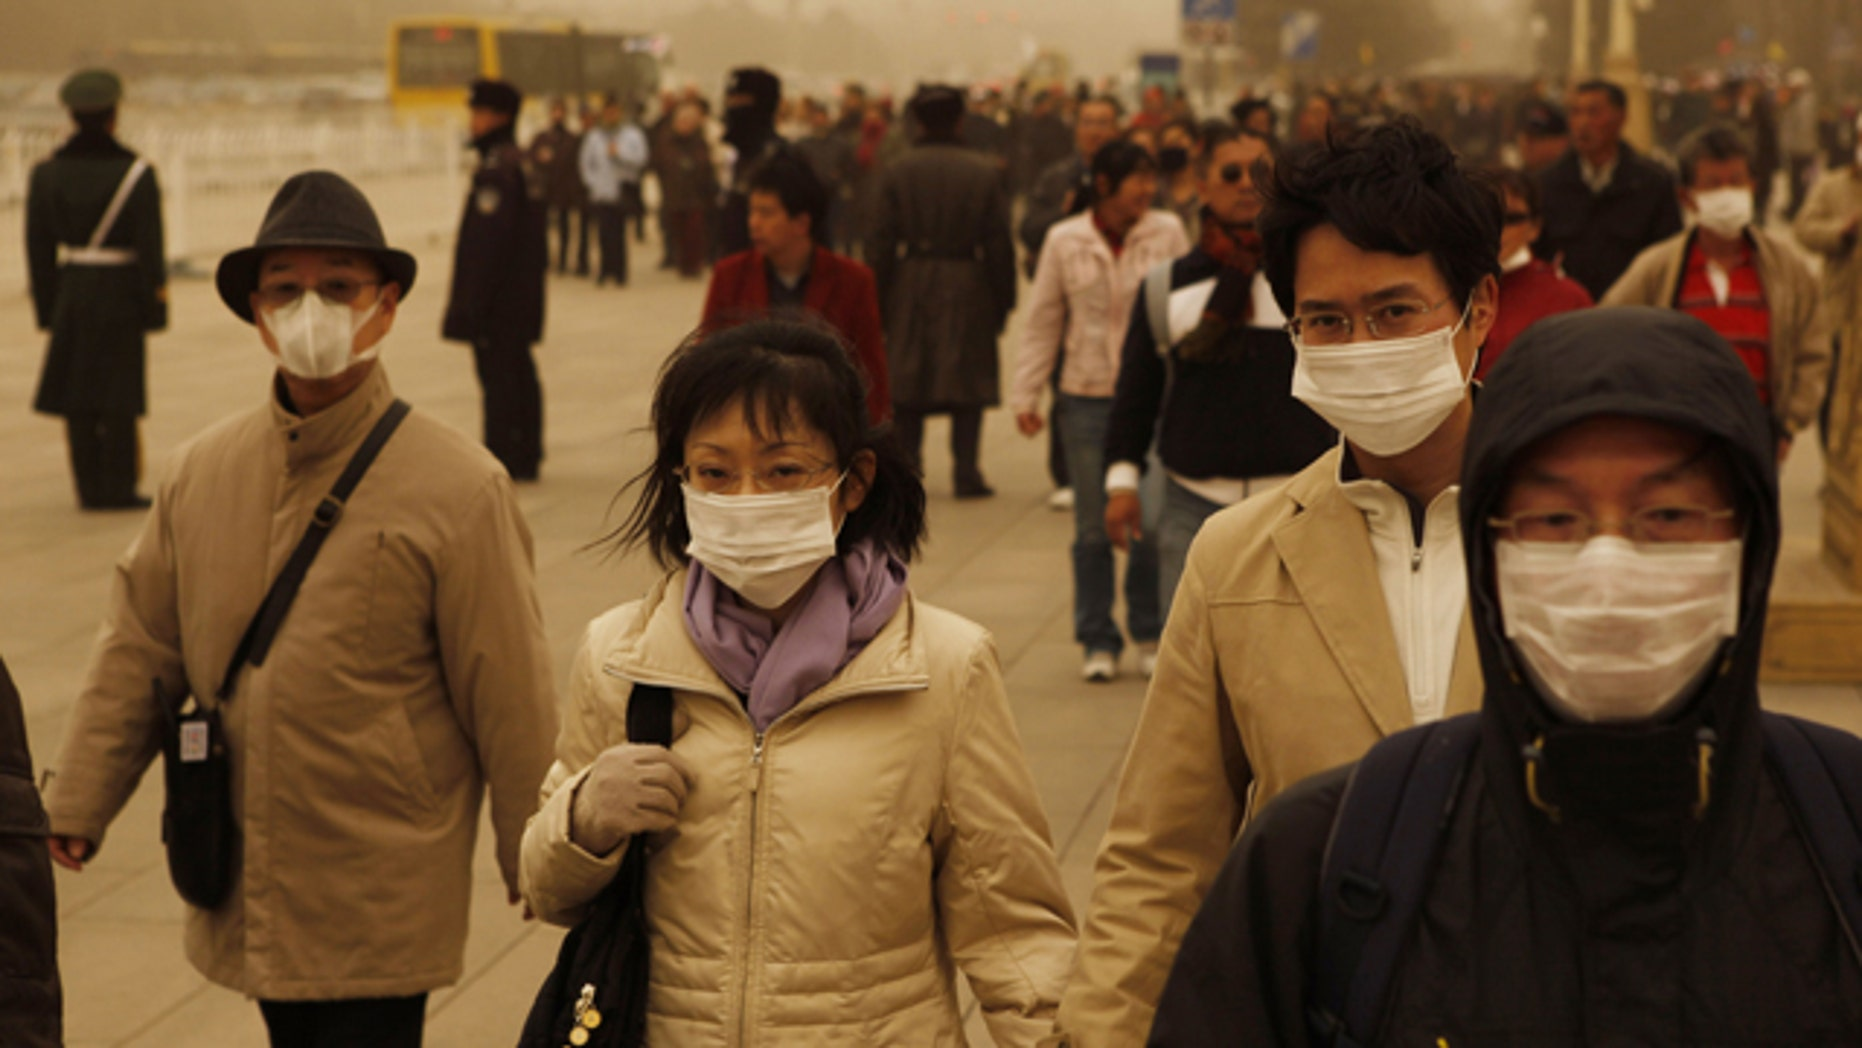 Tourists and residents wear masks as they visit Tiananmen gate during a sandstorm in Beijing, China, Monday, March 22, 2010.